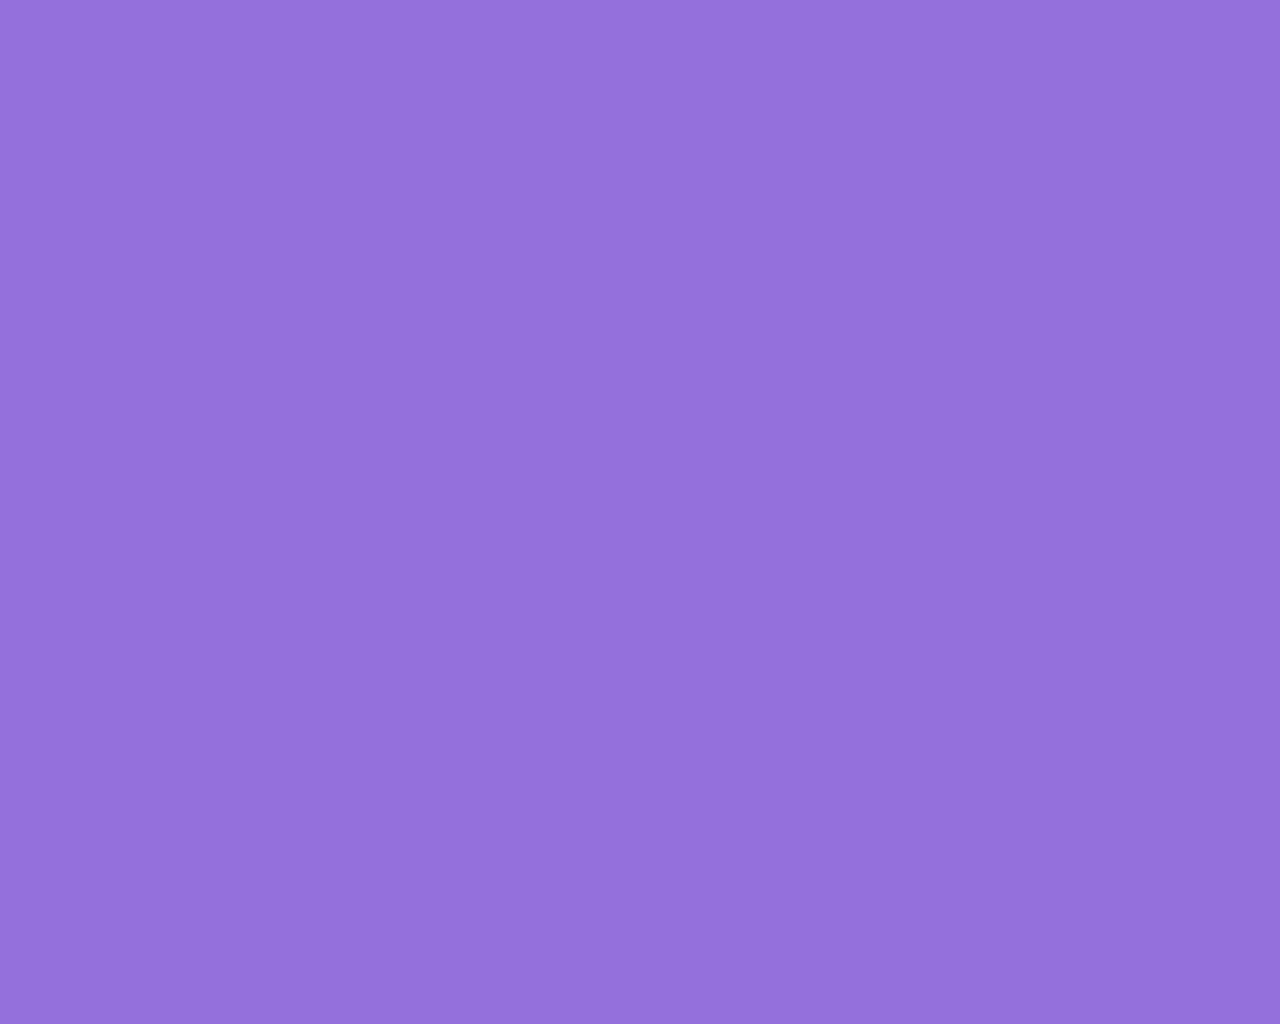 Solid Purple Wallpaper Another Colorful 1280x1024